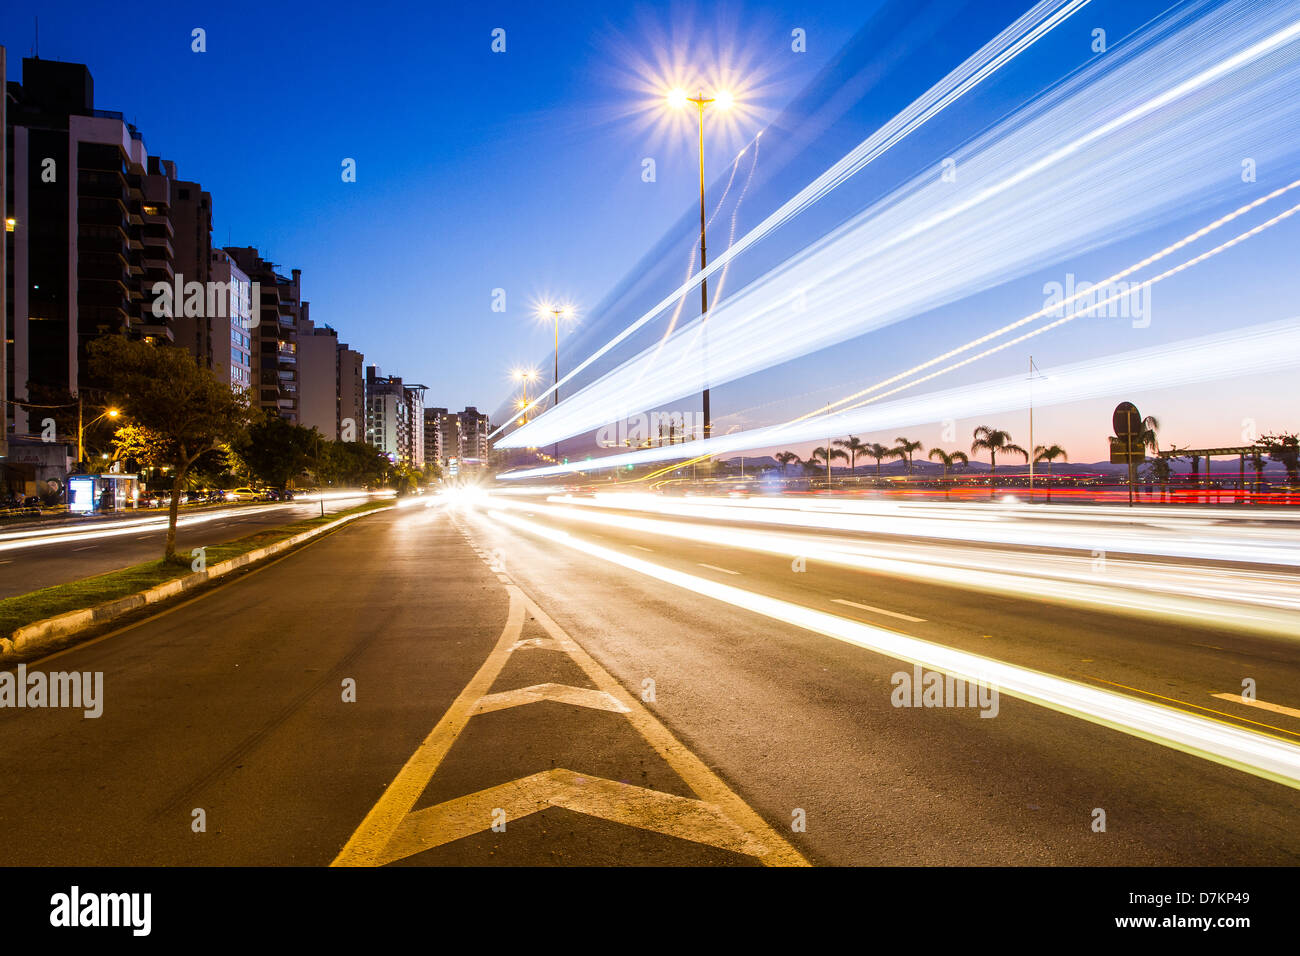 Traffic lights at Beira Mar Norte Avenue at evening. - Stock Image